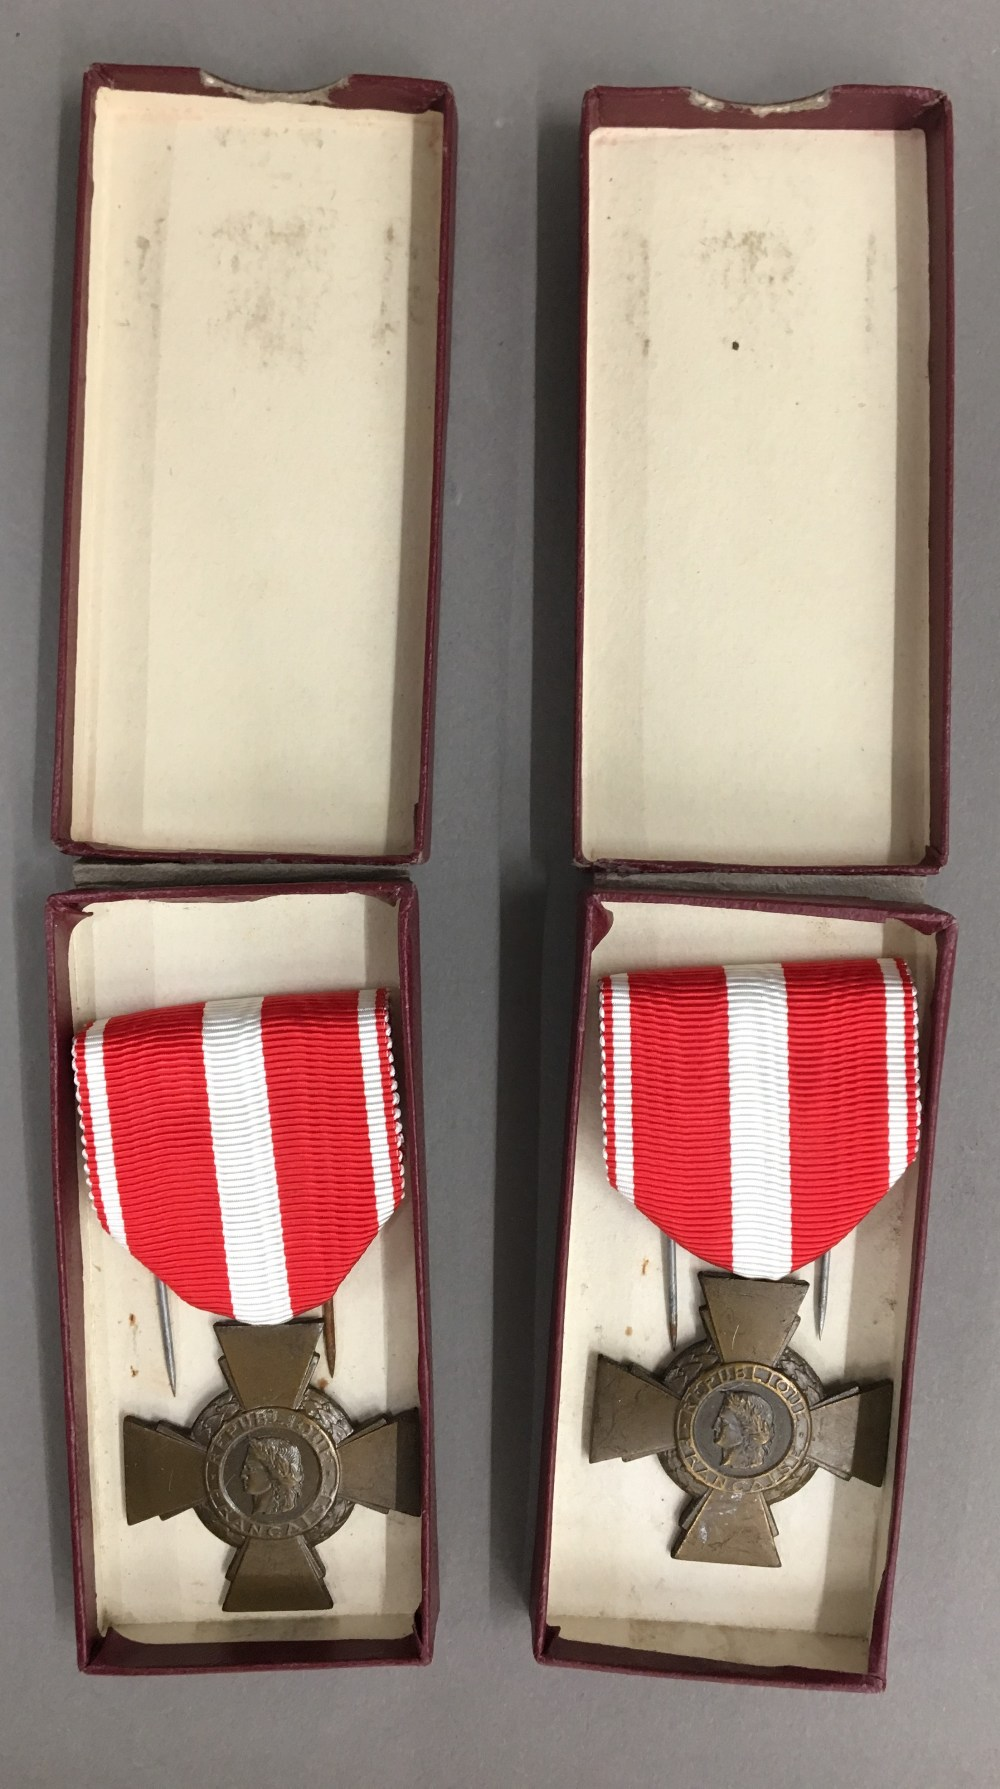 Two French Republic medals